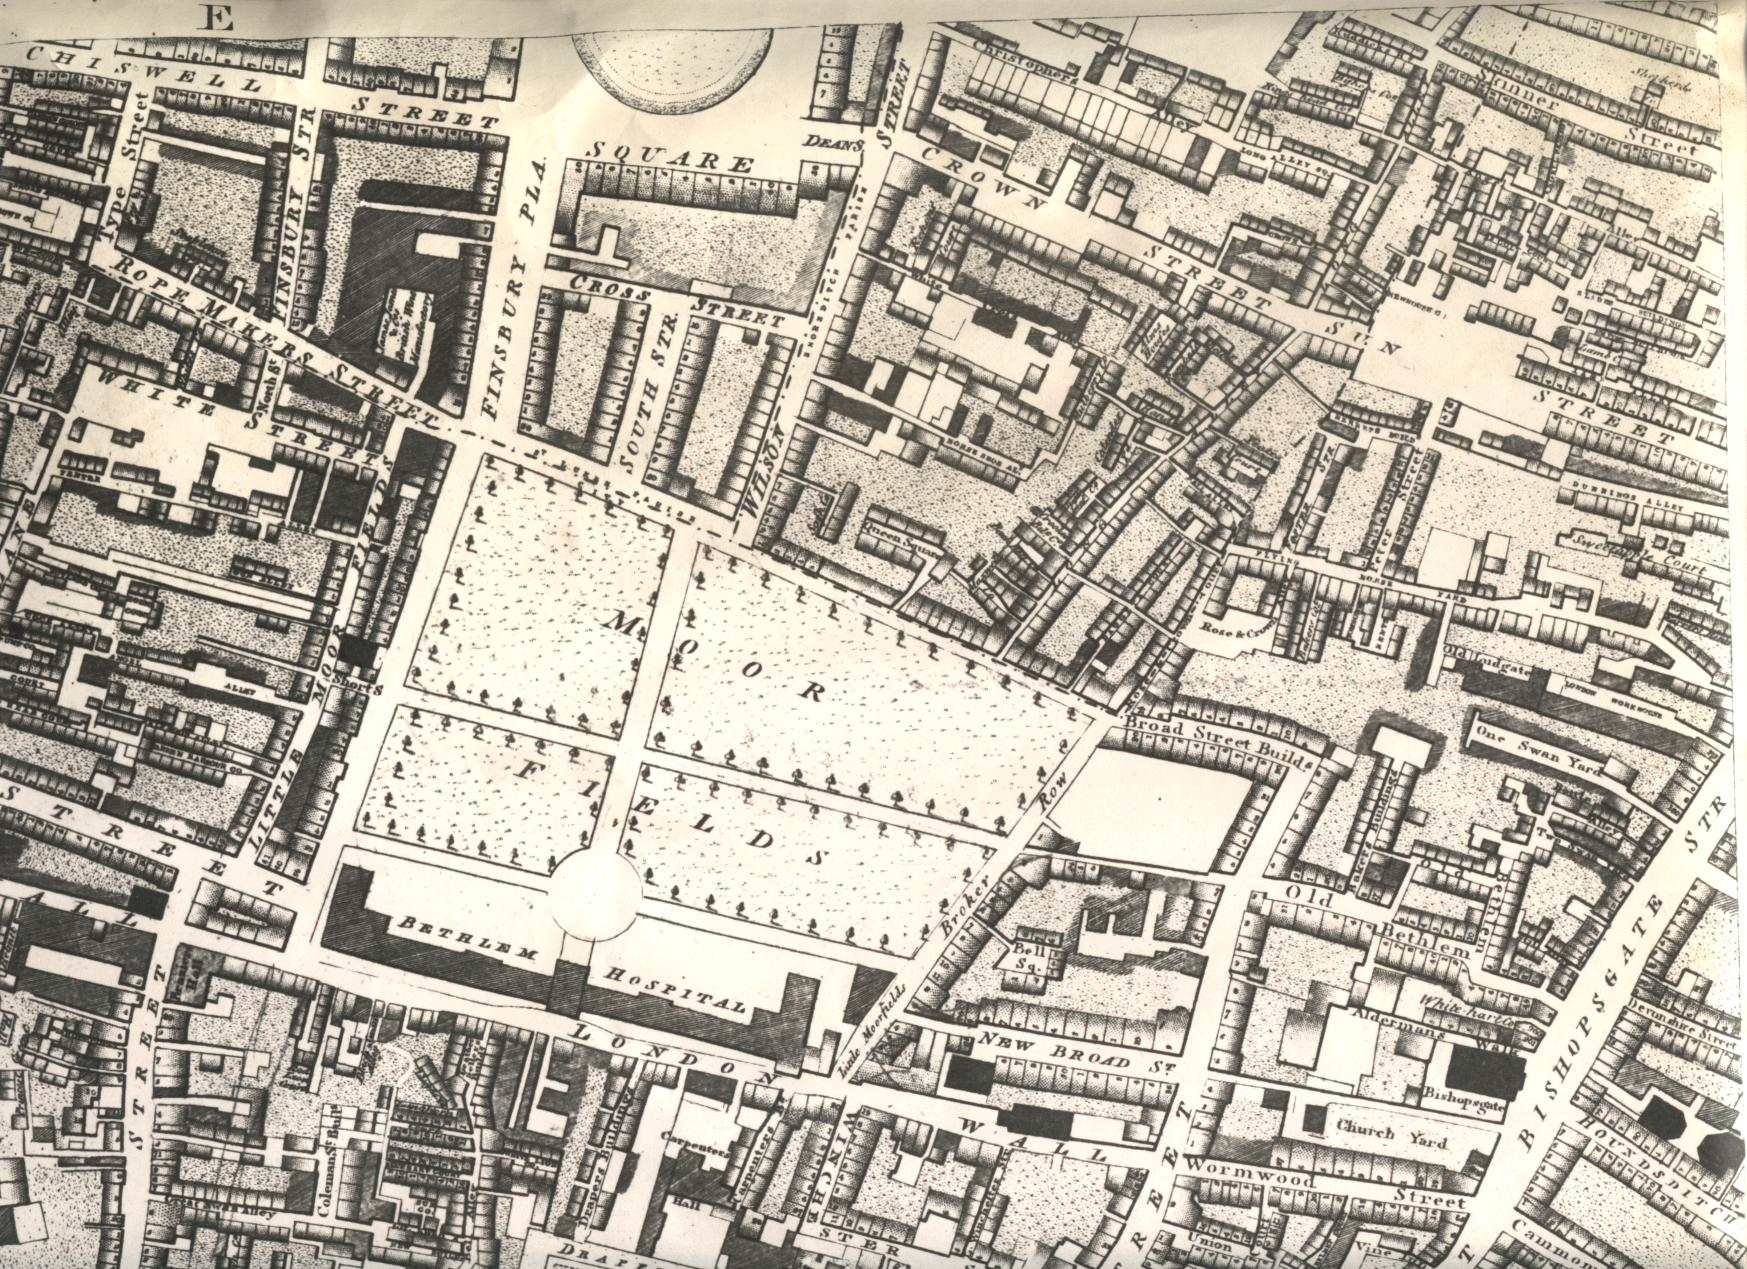 Map showing Bethlem Hospital, Moorfields, in